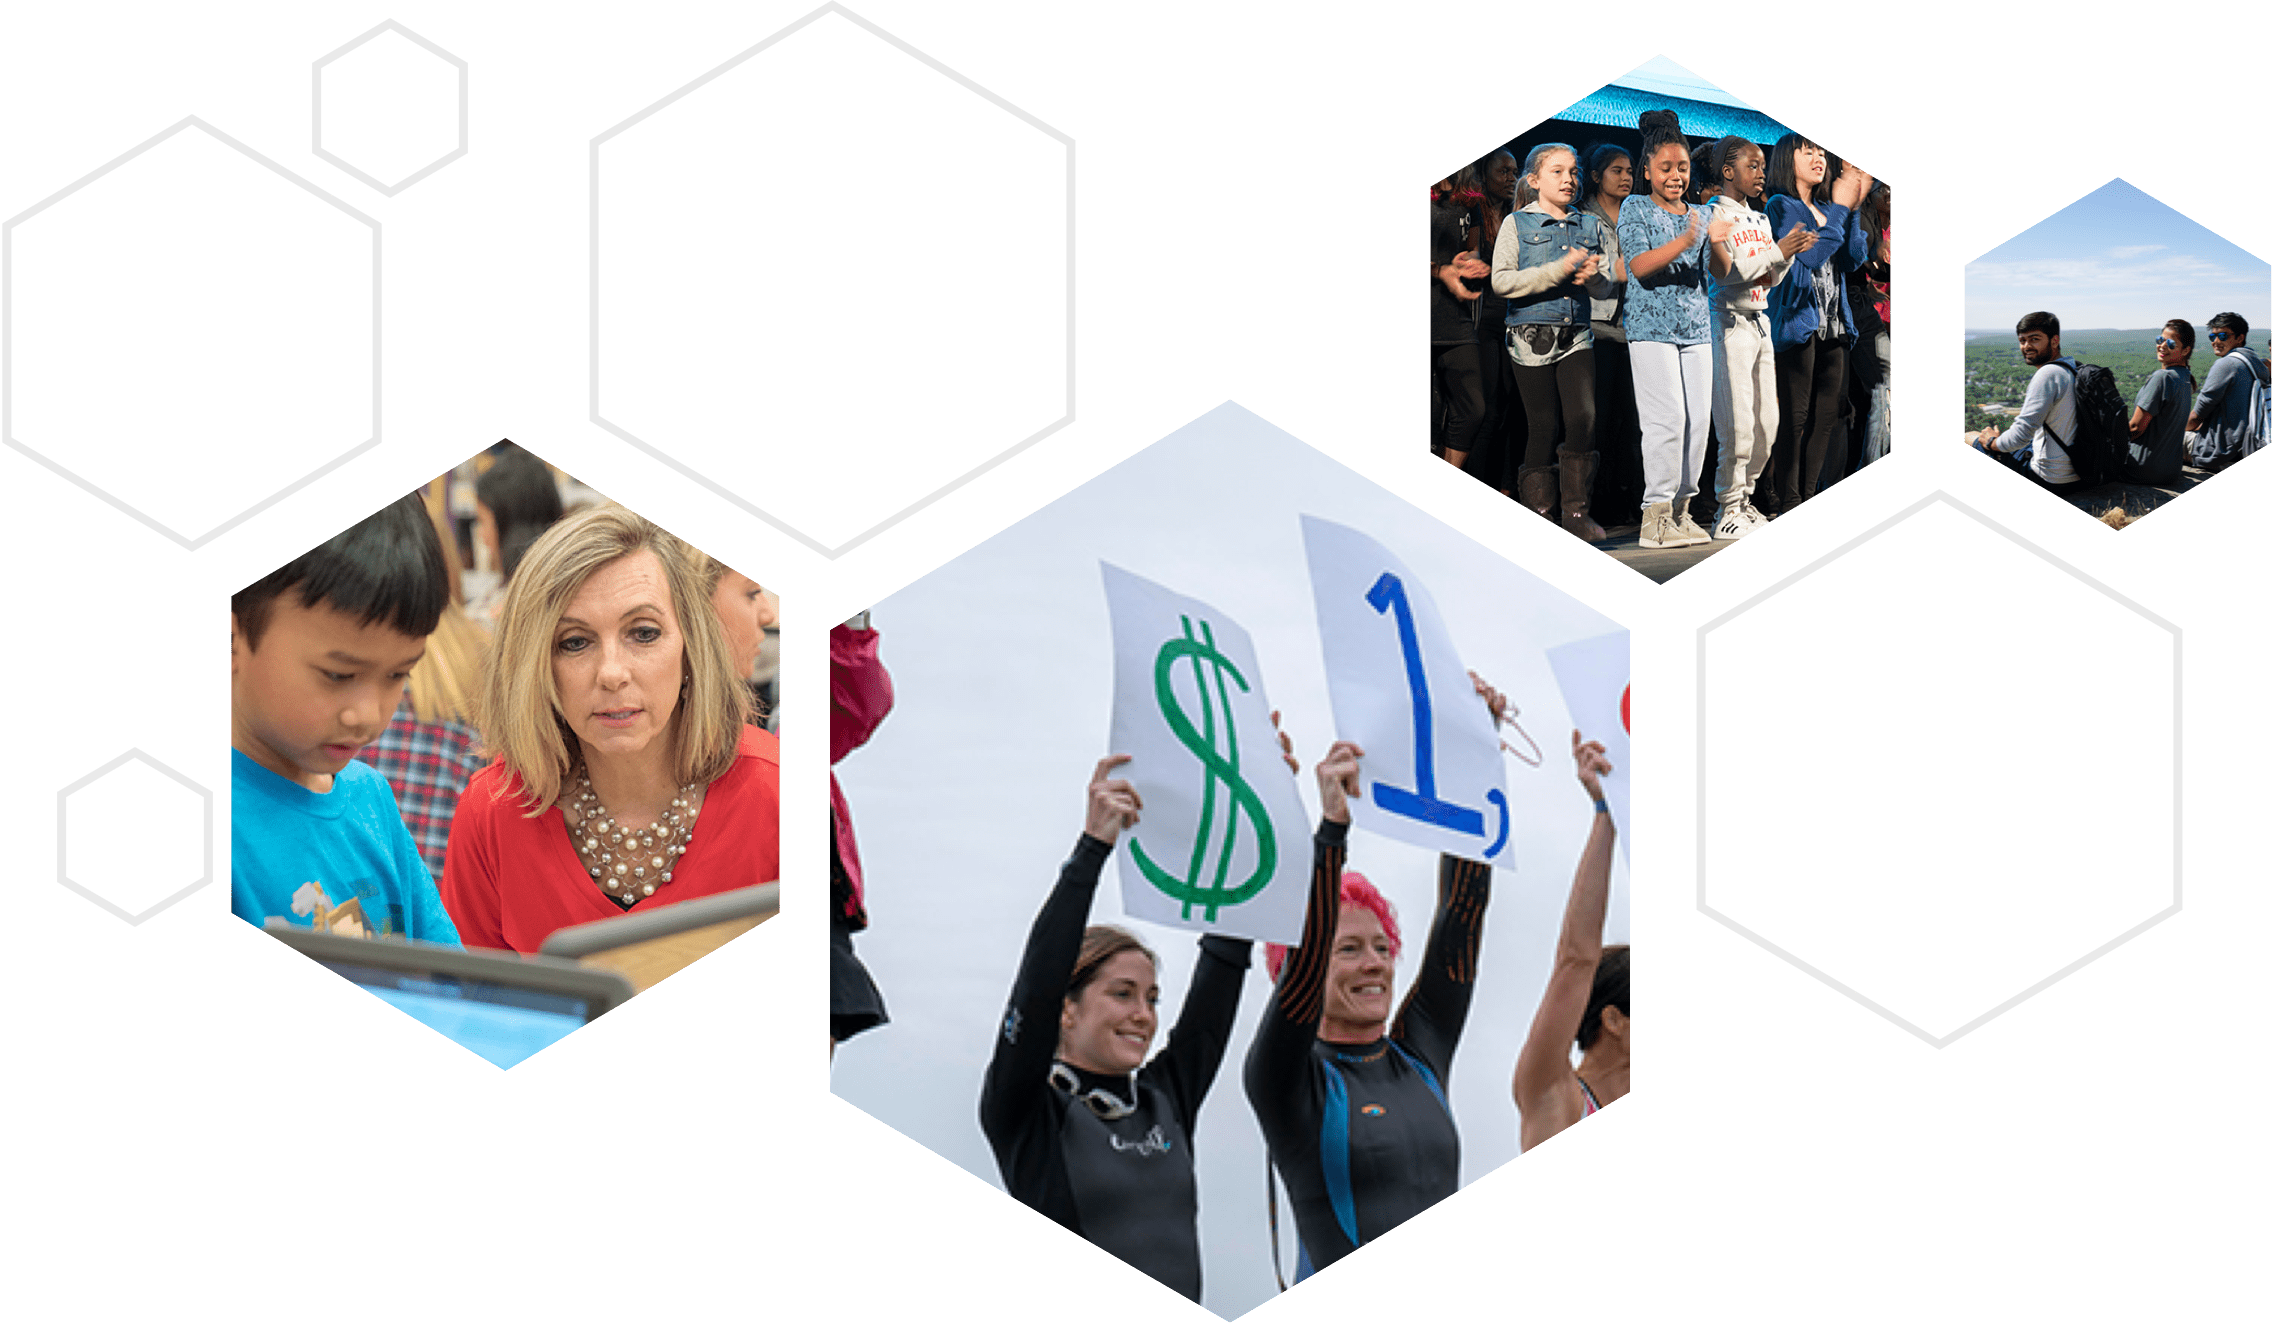 Health and Benefits Employee Collage